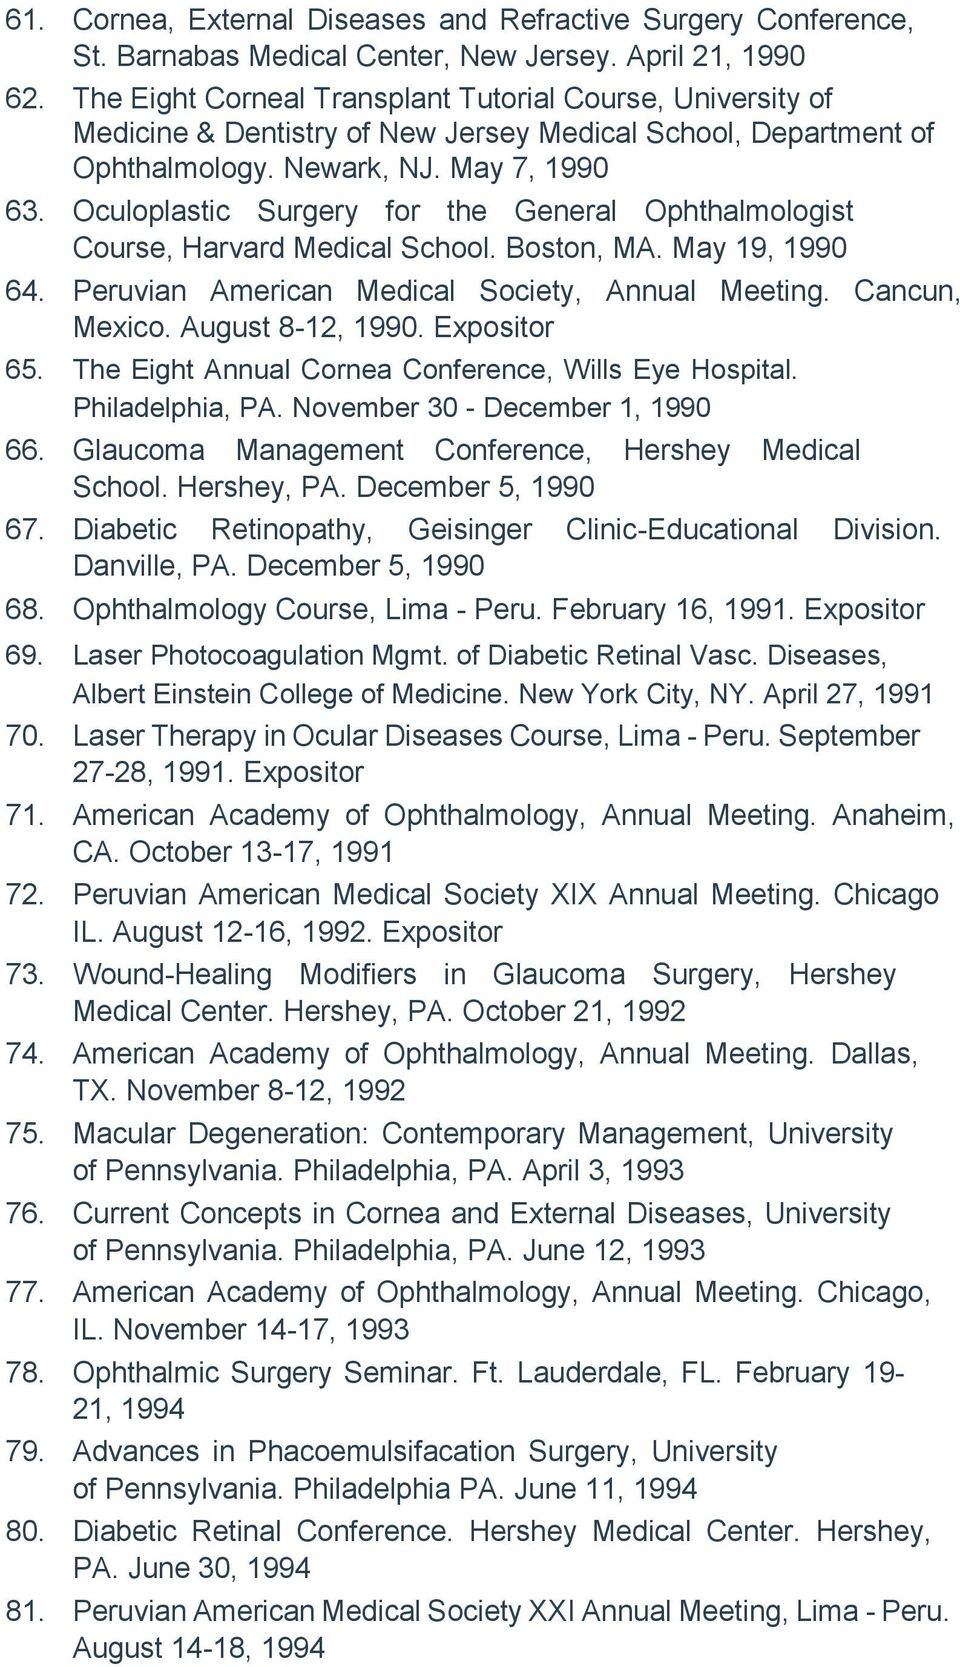 Oculoplastic Surgery for the General Ophthalmologist Course, Harvard Medical School. Boston, MA. May 19, 1990 64. Peruvian American Medical Society, Annual Meeting. Cancun, Mexico. August 8-12, 1990.